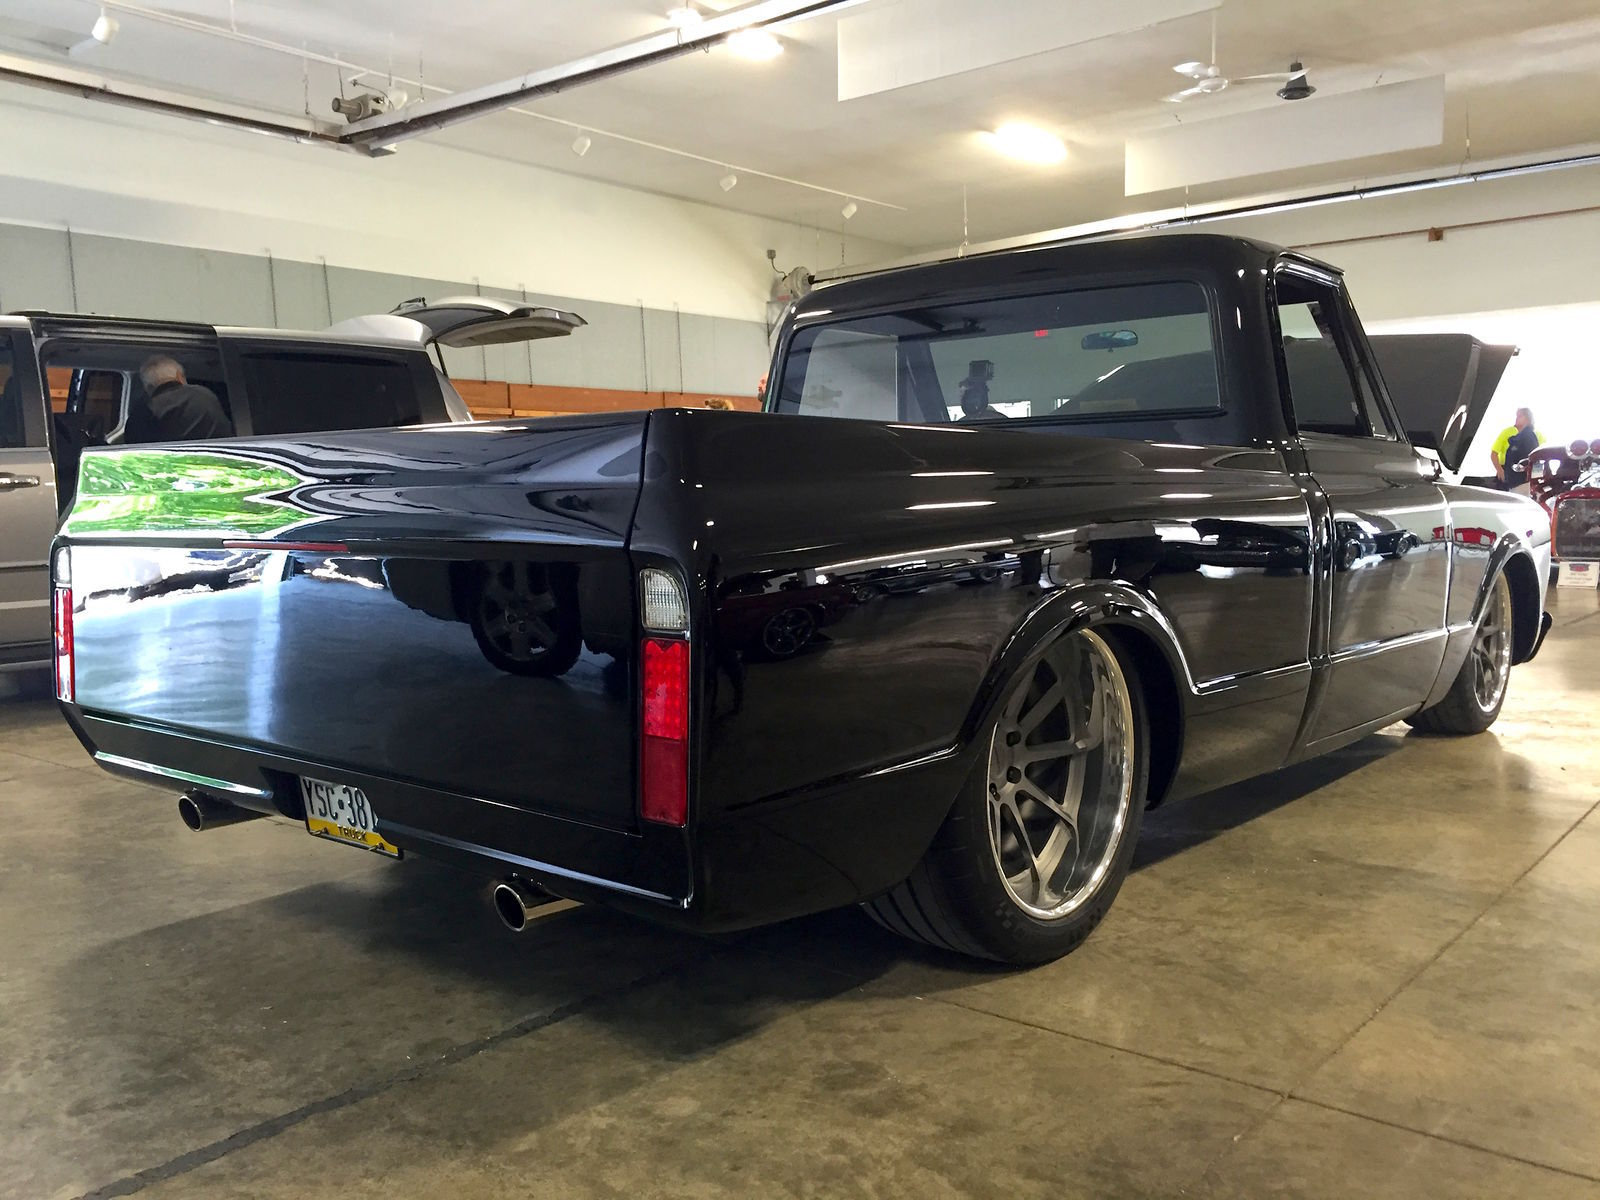 1970 Chevrolet C-10 | Steve & Danielle Locklin 2016 Goodguys Truck of the Year Finalist with 1970 Chevy C10 on Forgeline RB3C Wheels